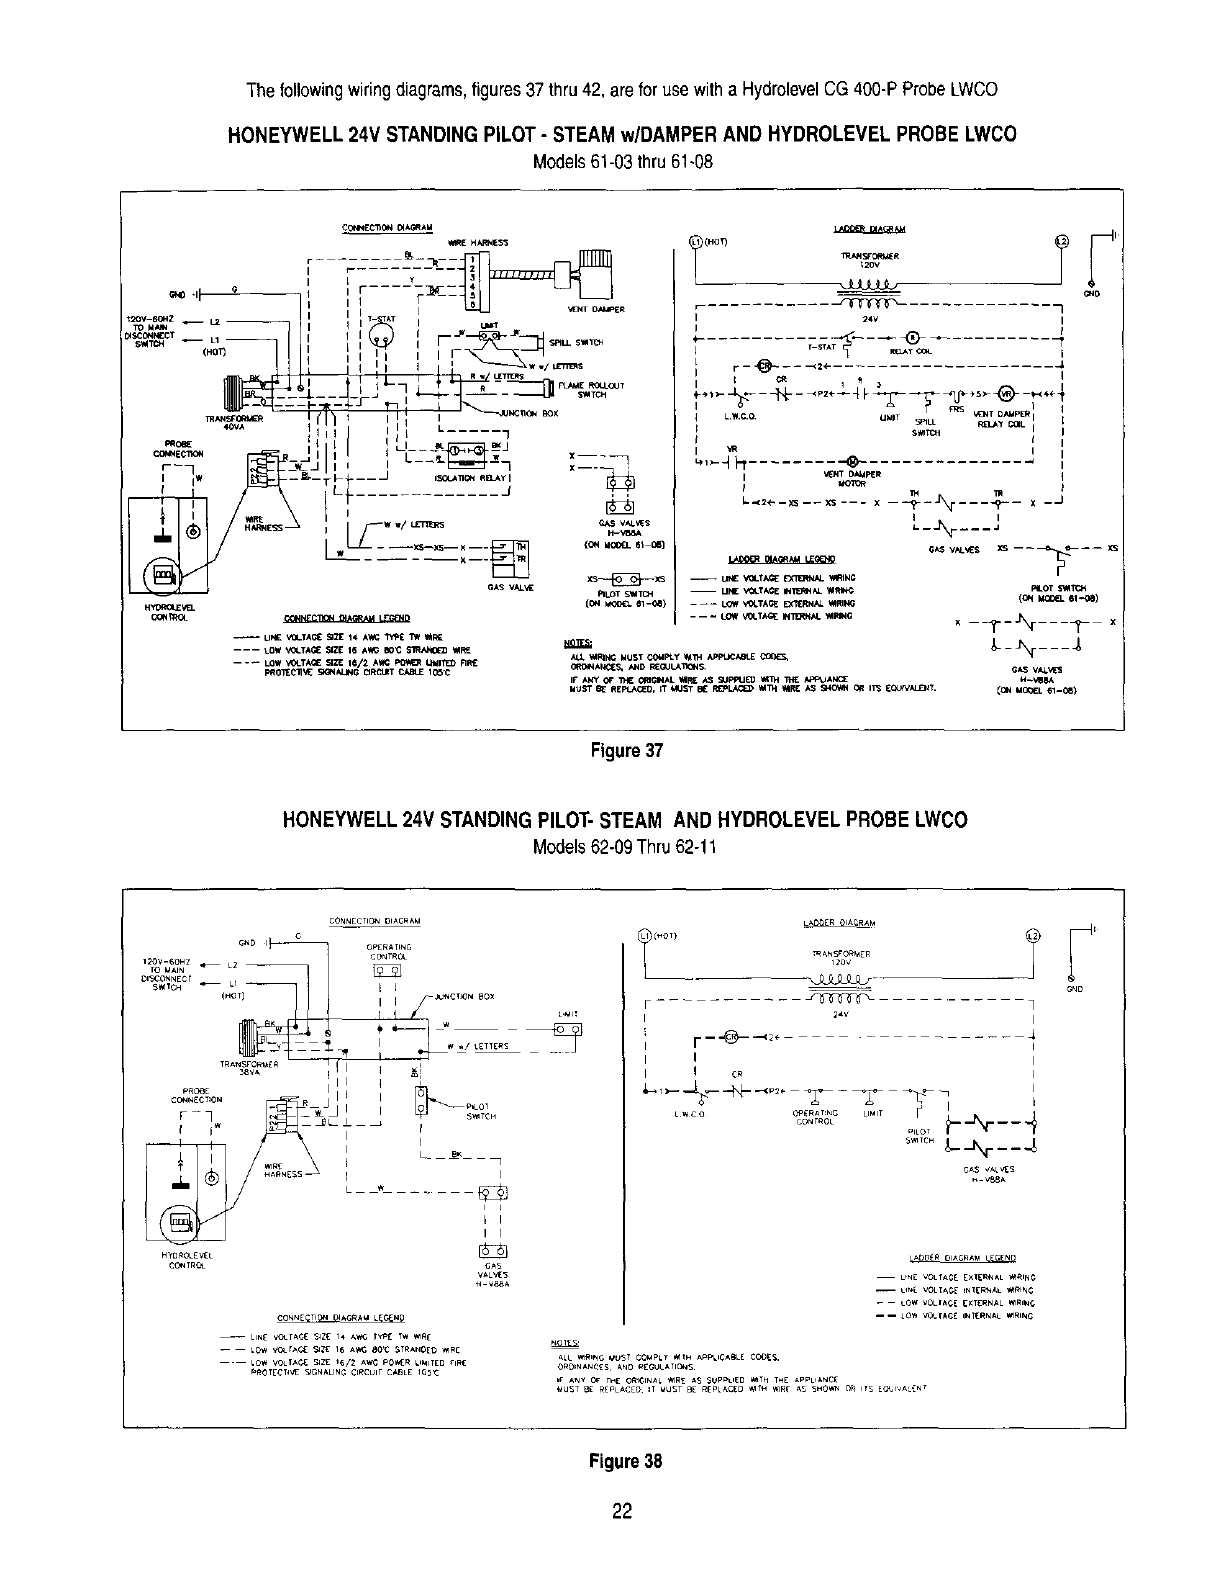 PEERLESS Boiler Manual L0308192UserManual.wiki